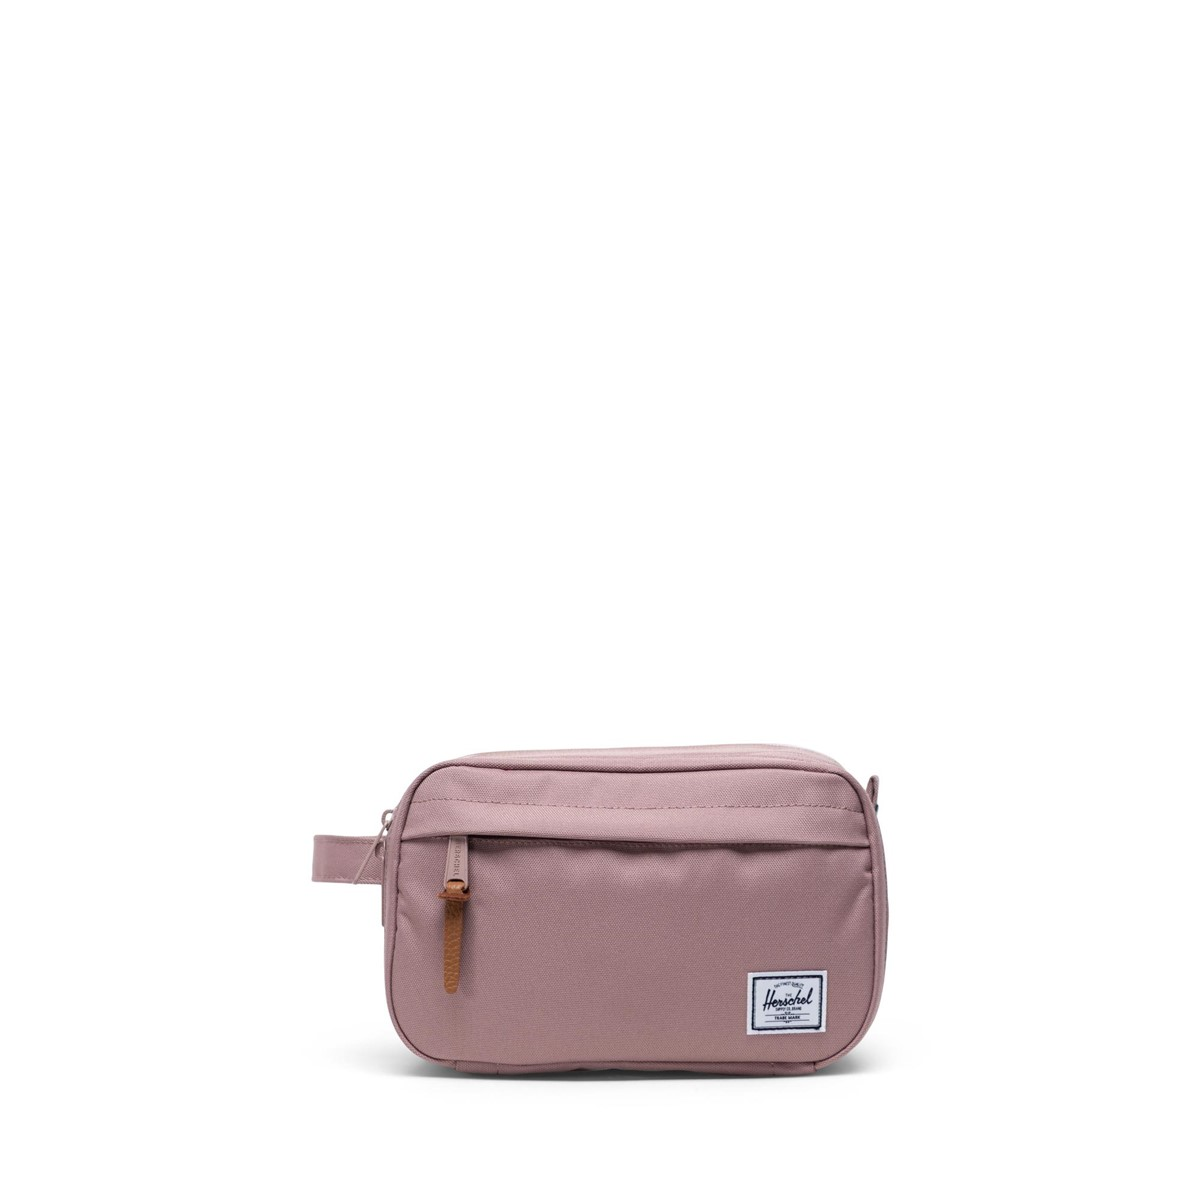 Chapter XL Travel Kit in Ash Rose